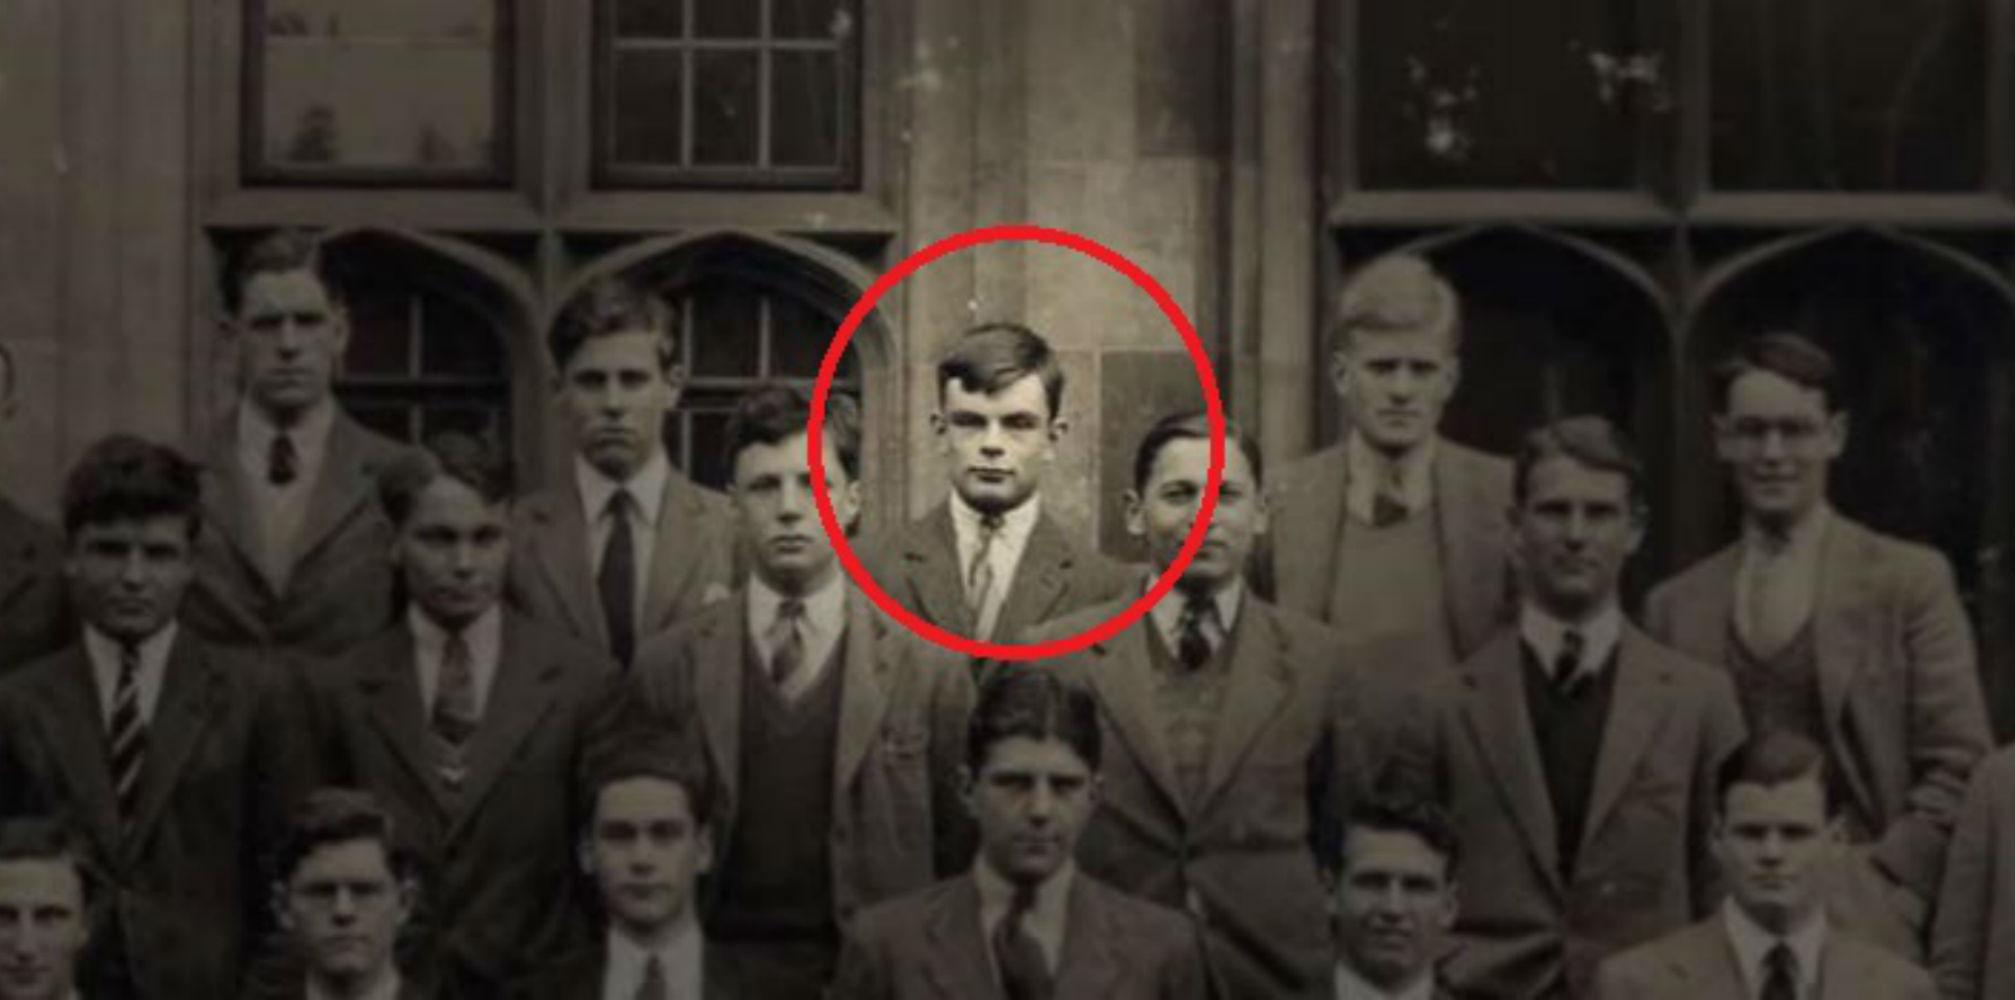 Alan Turing's school report might come as a surprise | indy100